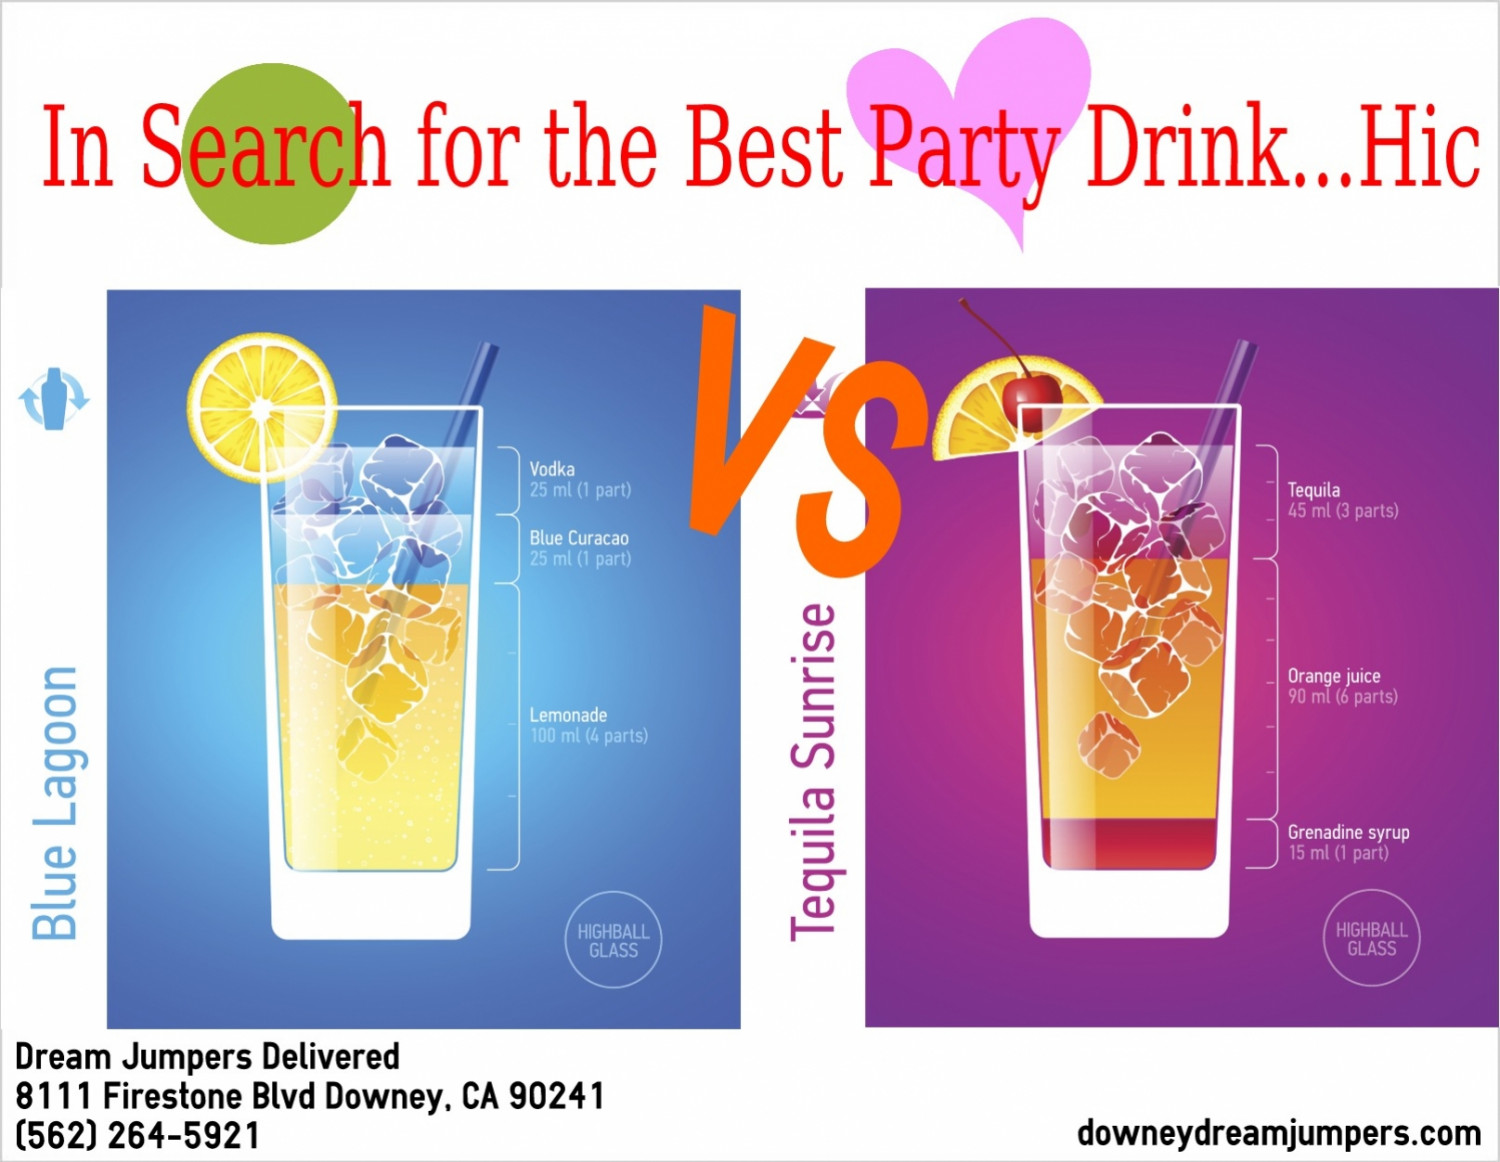 In Search of the Best Party Drink Infographic